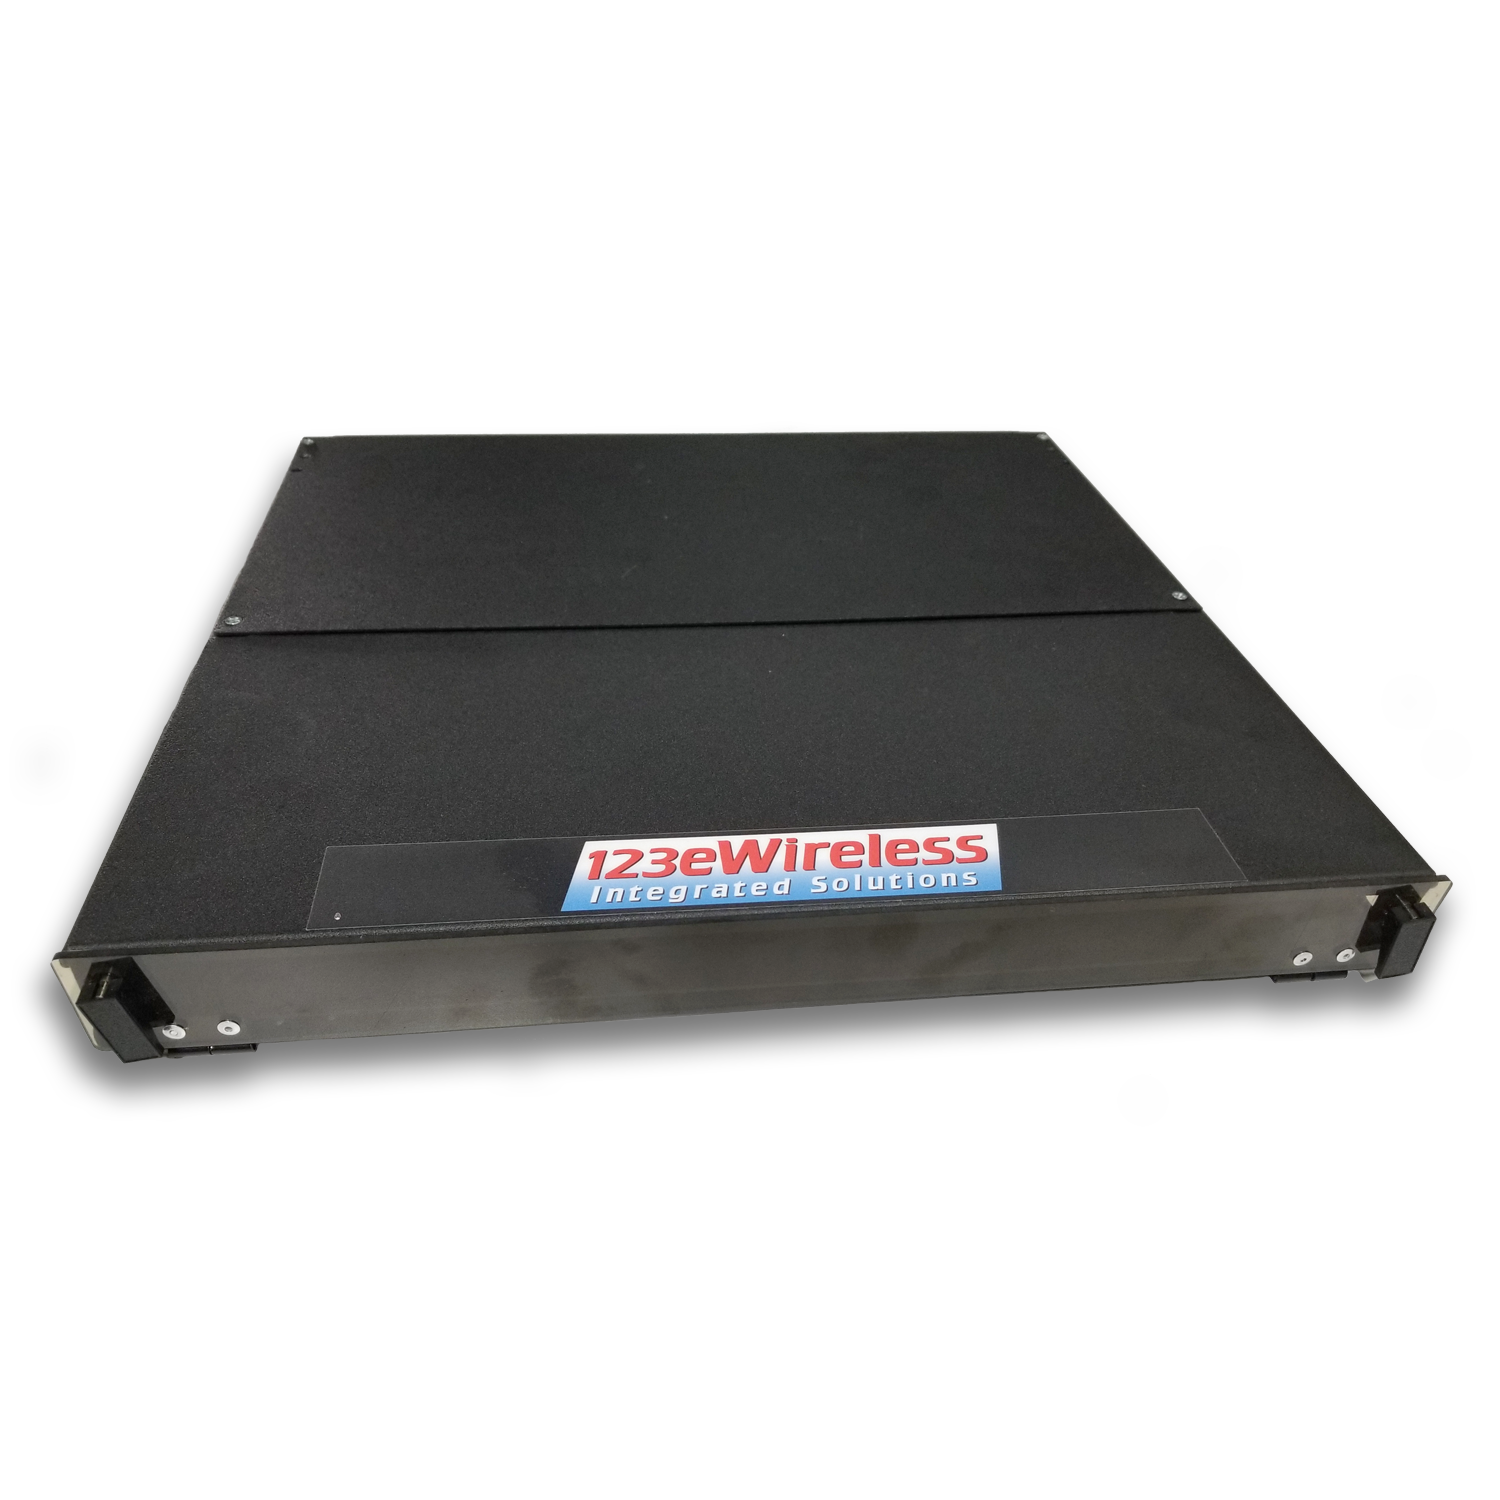 1RU High Density Rack Mount Enclosure